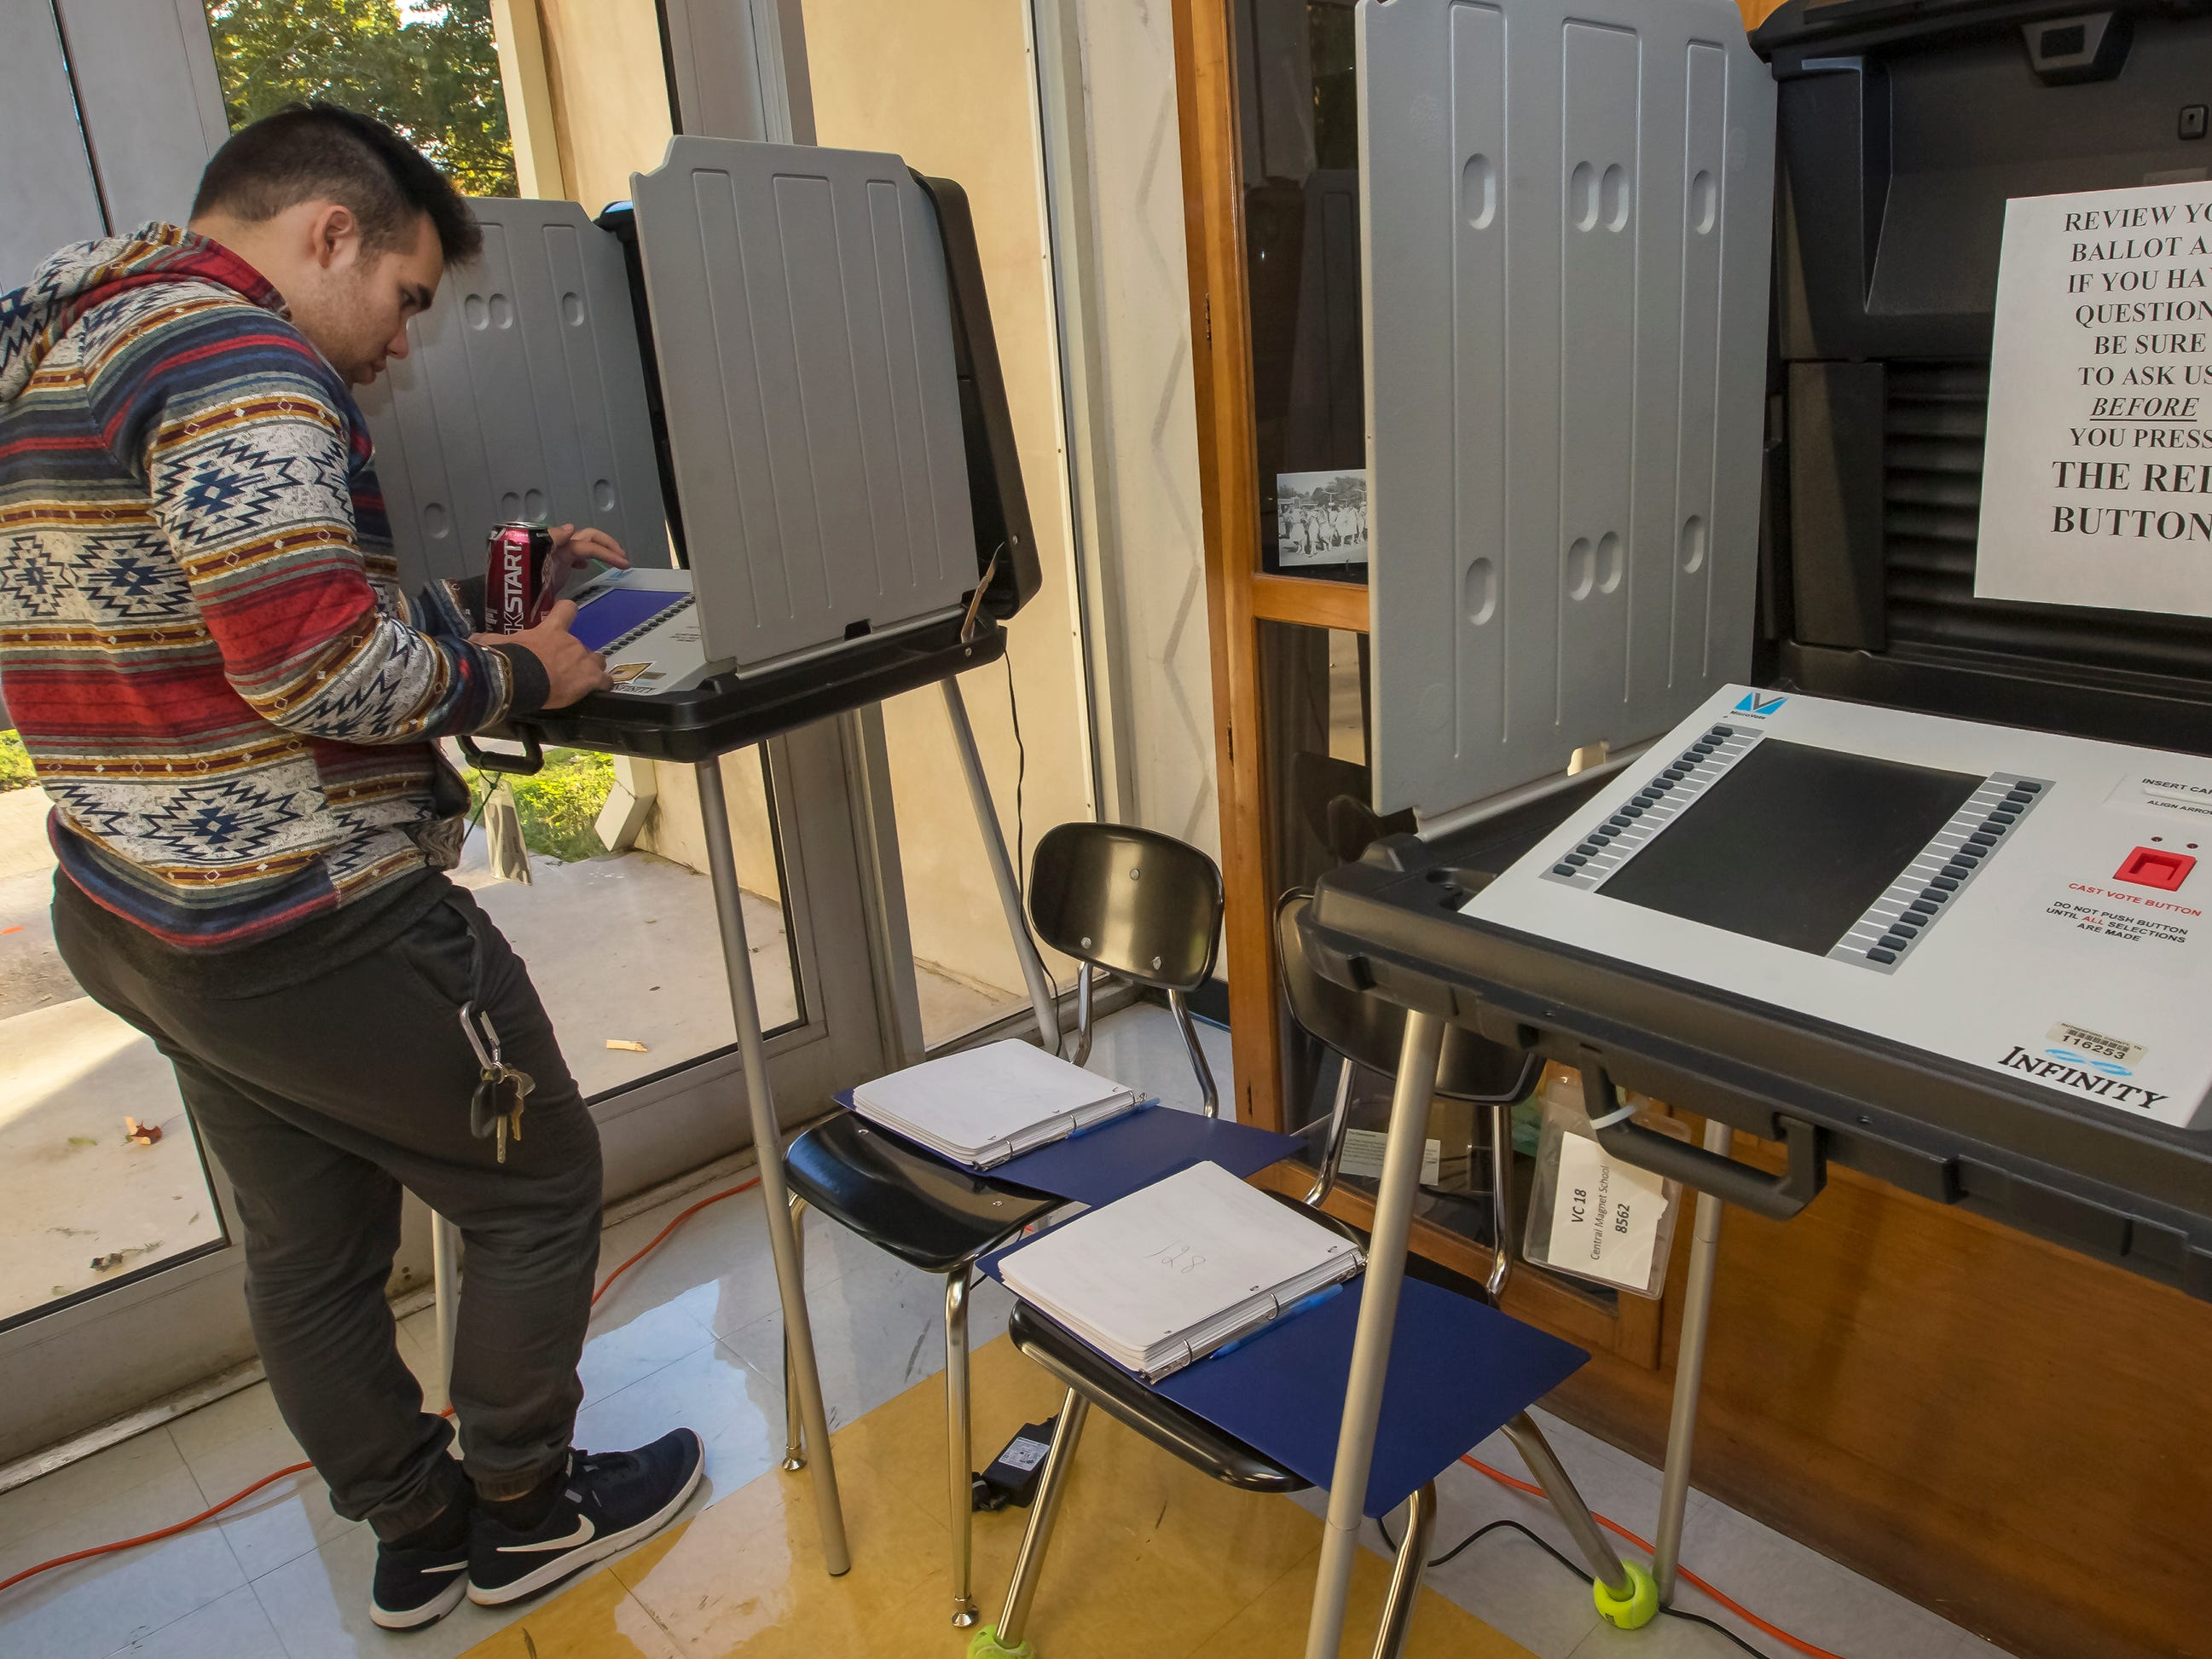 A voter works on his ballot at Central Magnet School.